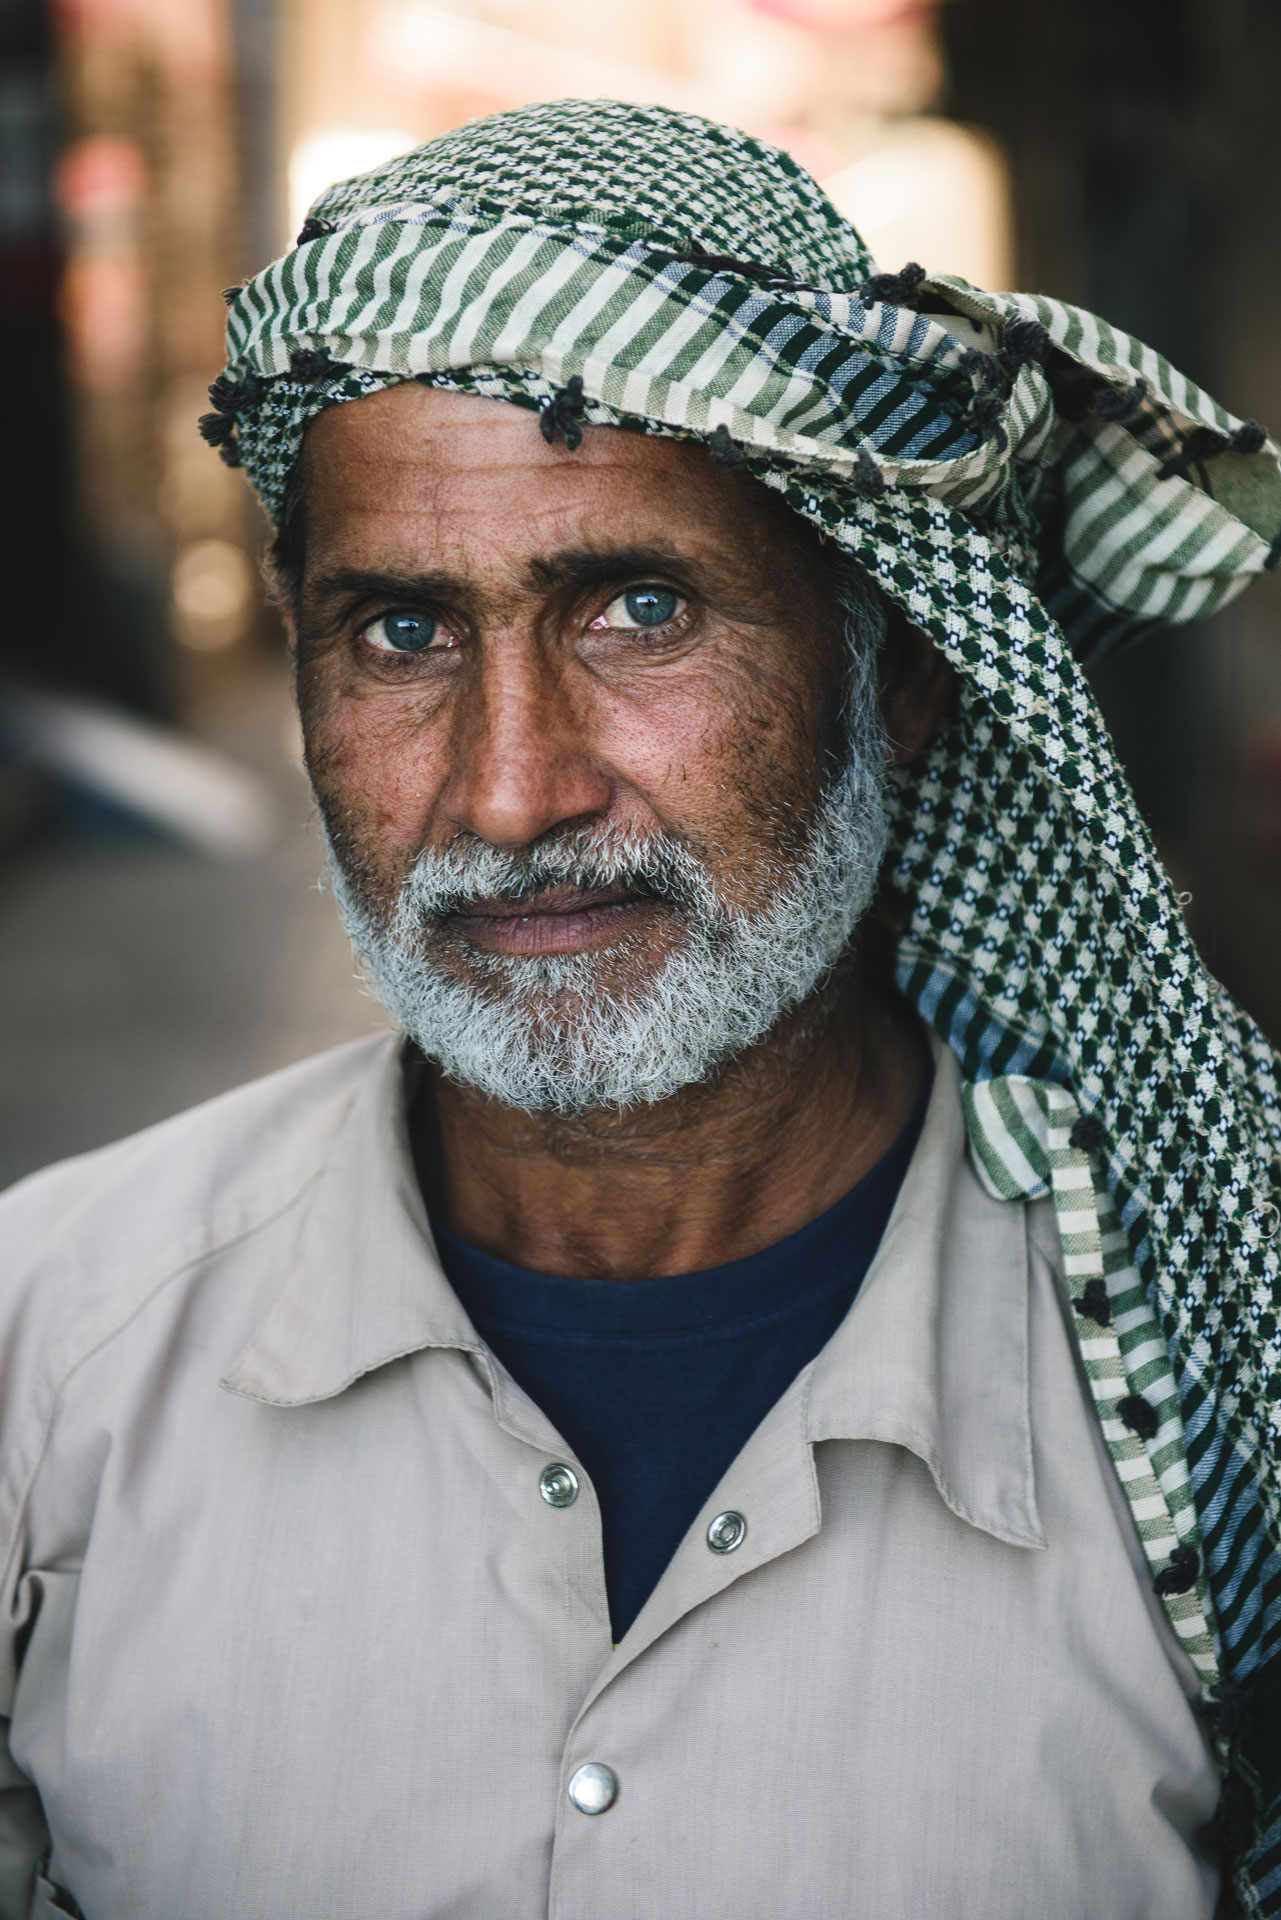 Portrait of a dockworker in Dubai